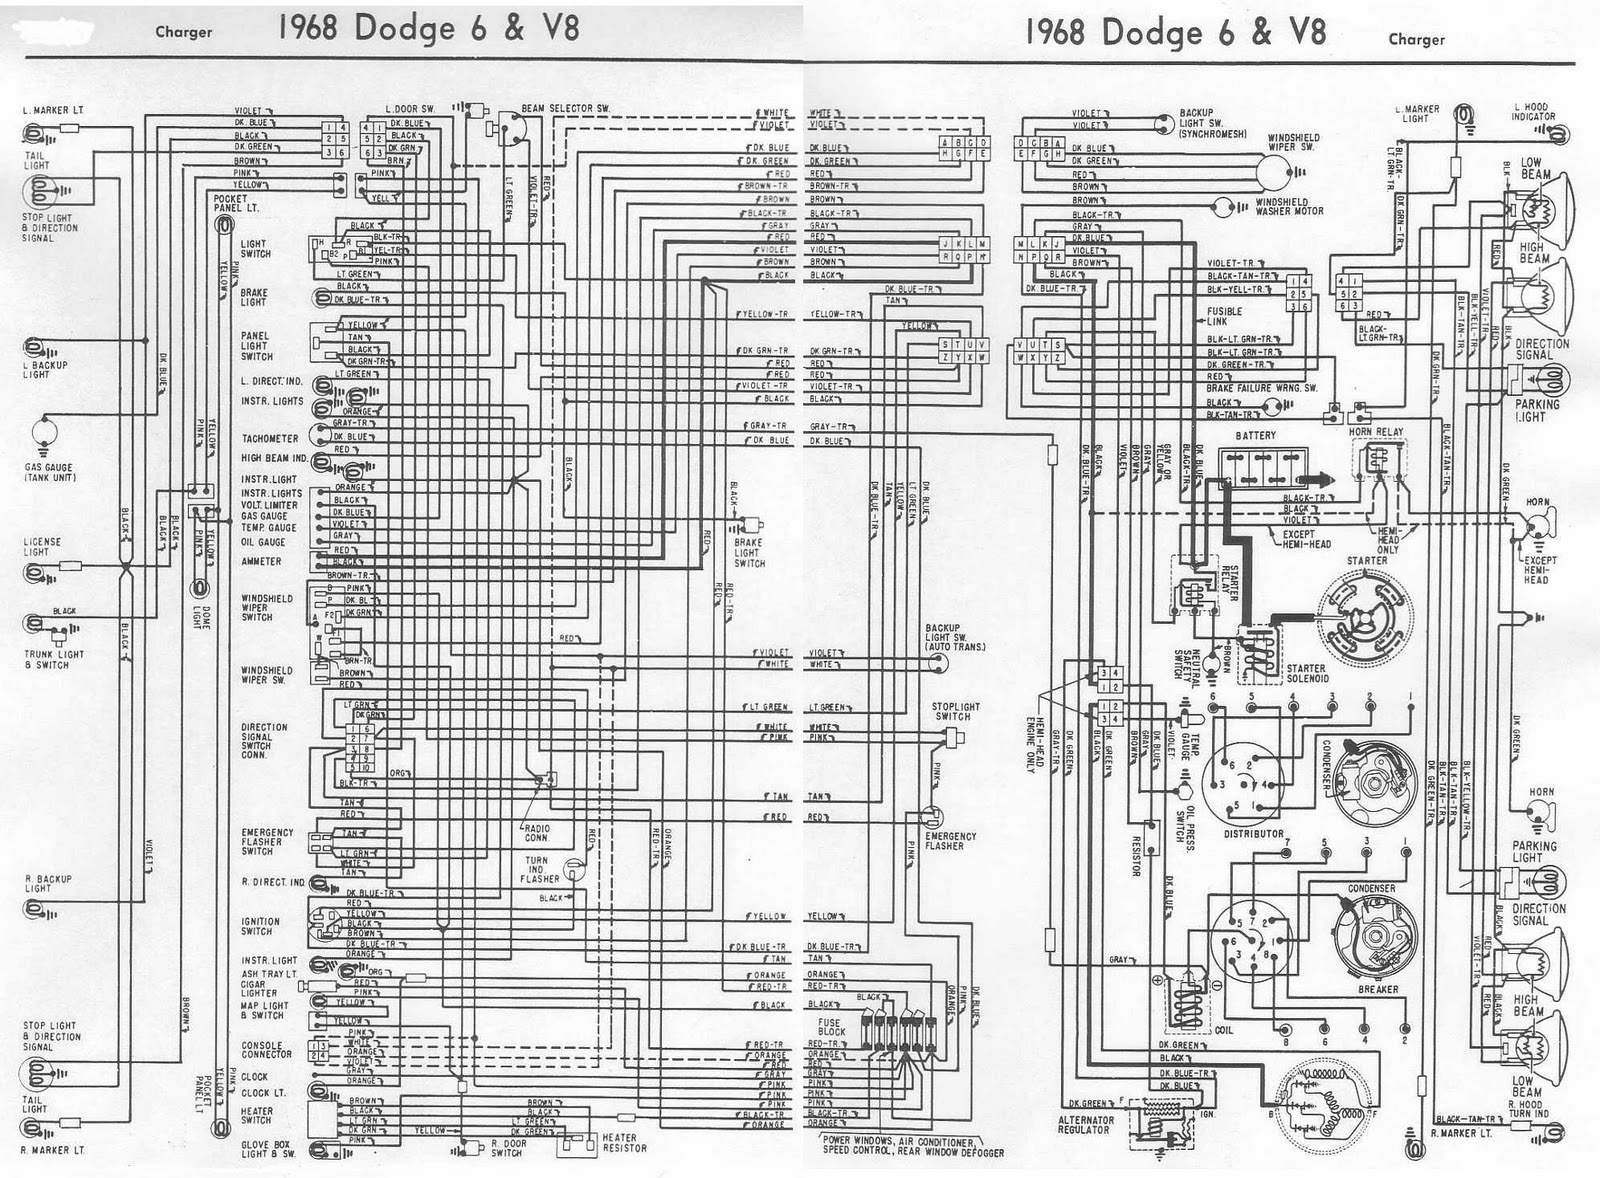 Dodge+Charger+1968+6+and+V8+Complete+Electrical+Wiring+Diagram dodge charger 1968 6 and v8 complete electrical wiring diagram dodge wiring diagrams at crackthecode.co